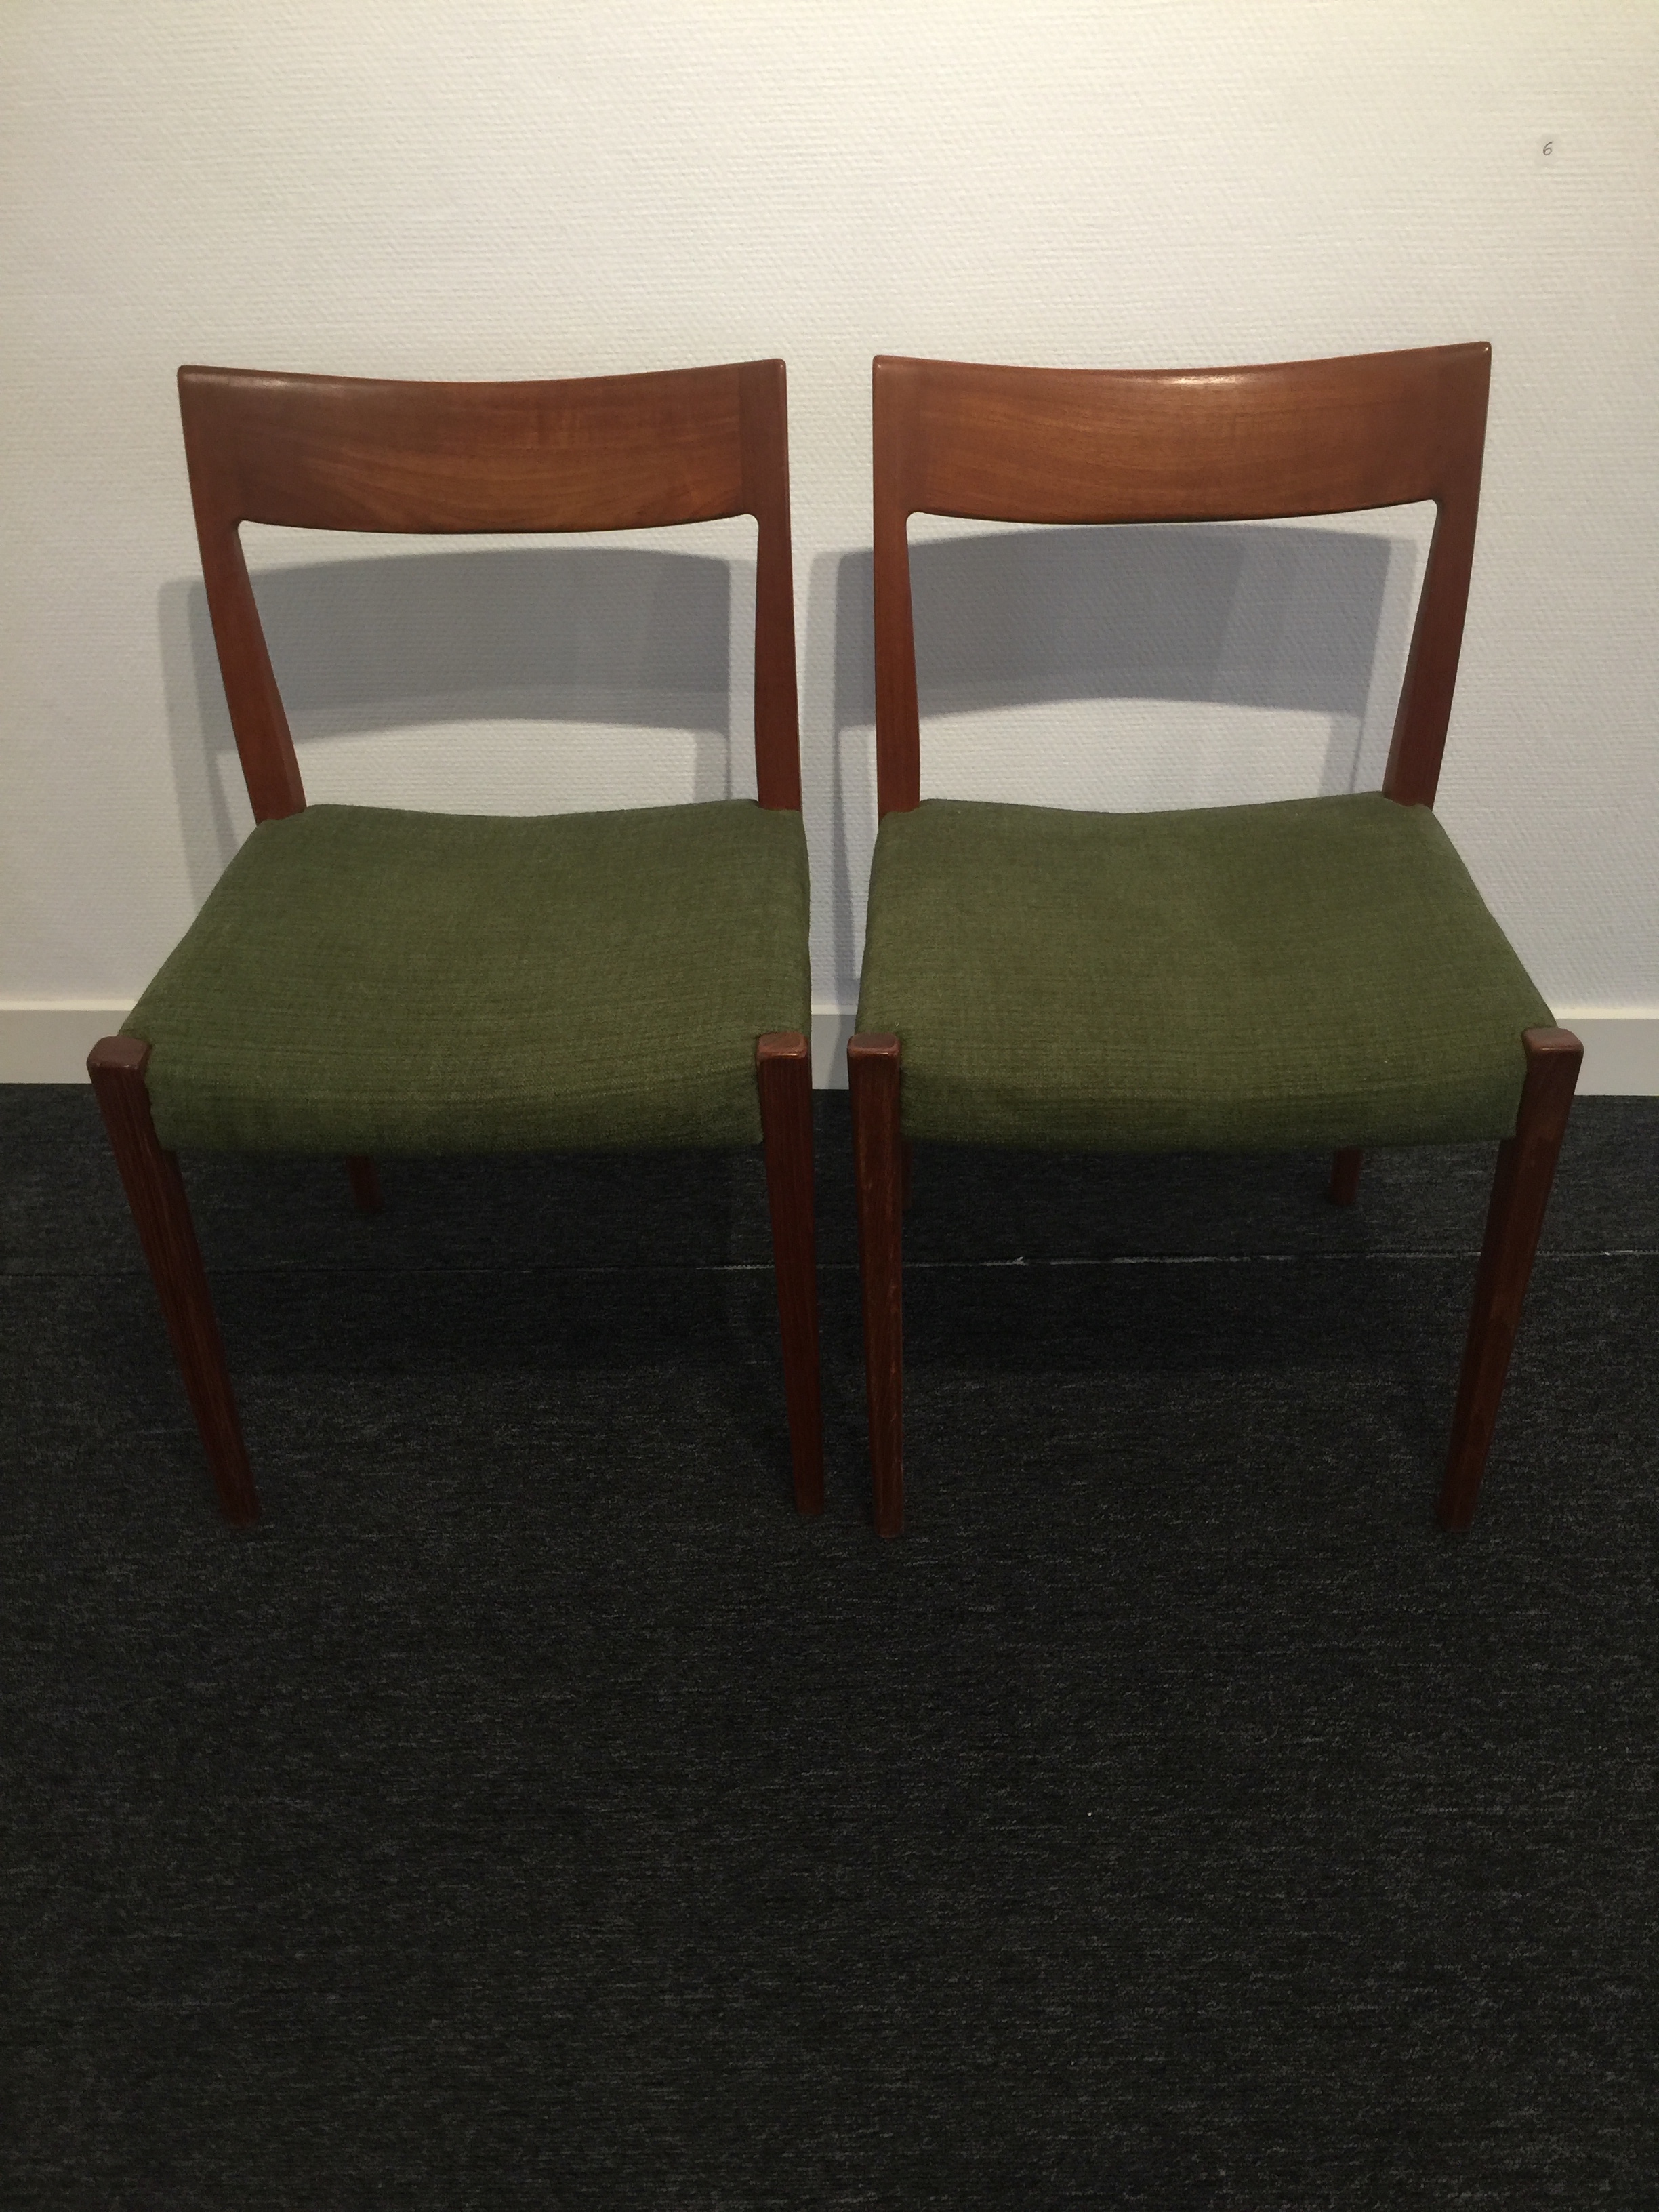 2 chairs Kontiki by Yngve Ekström for Troeds